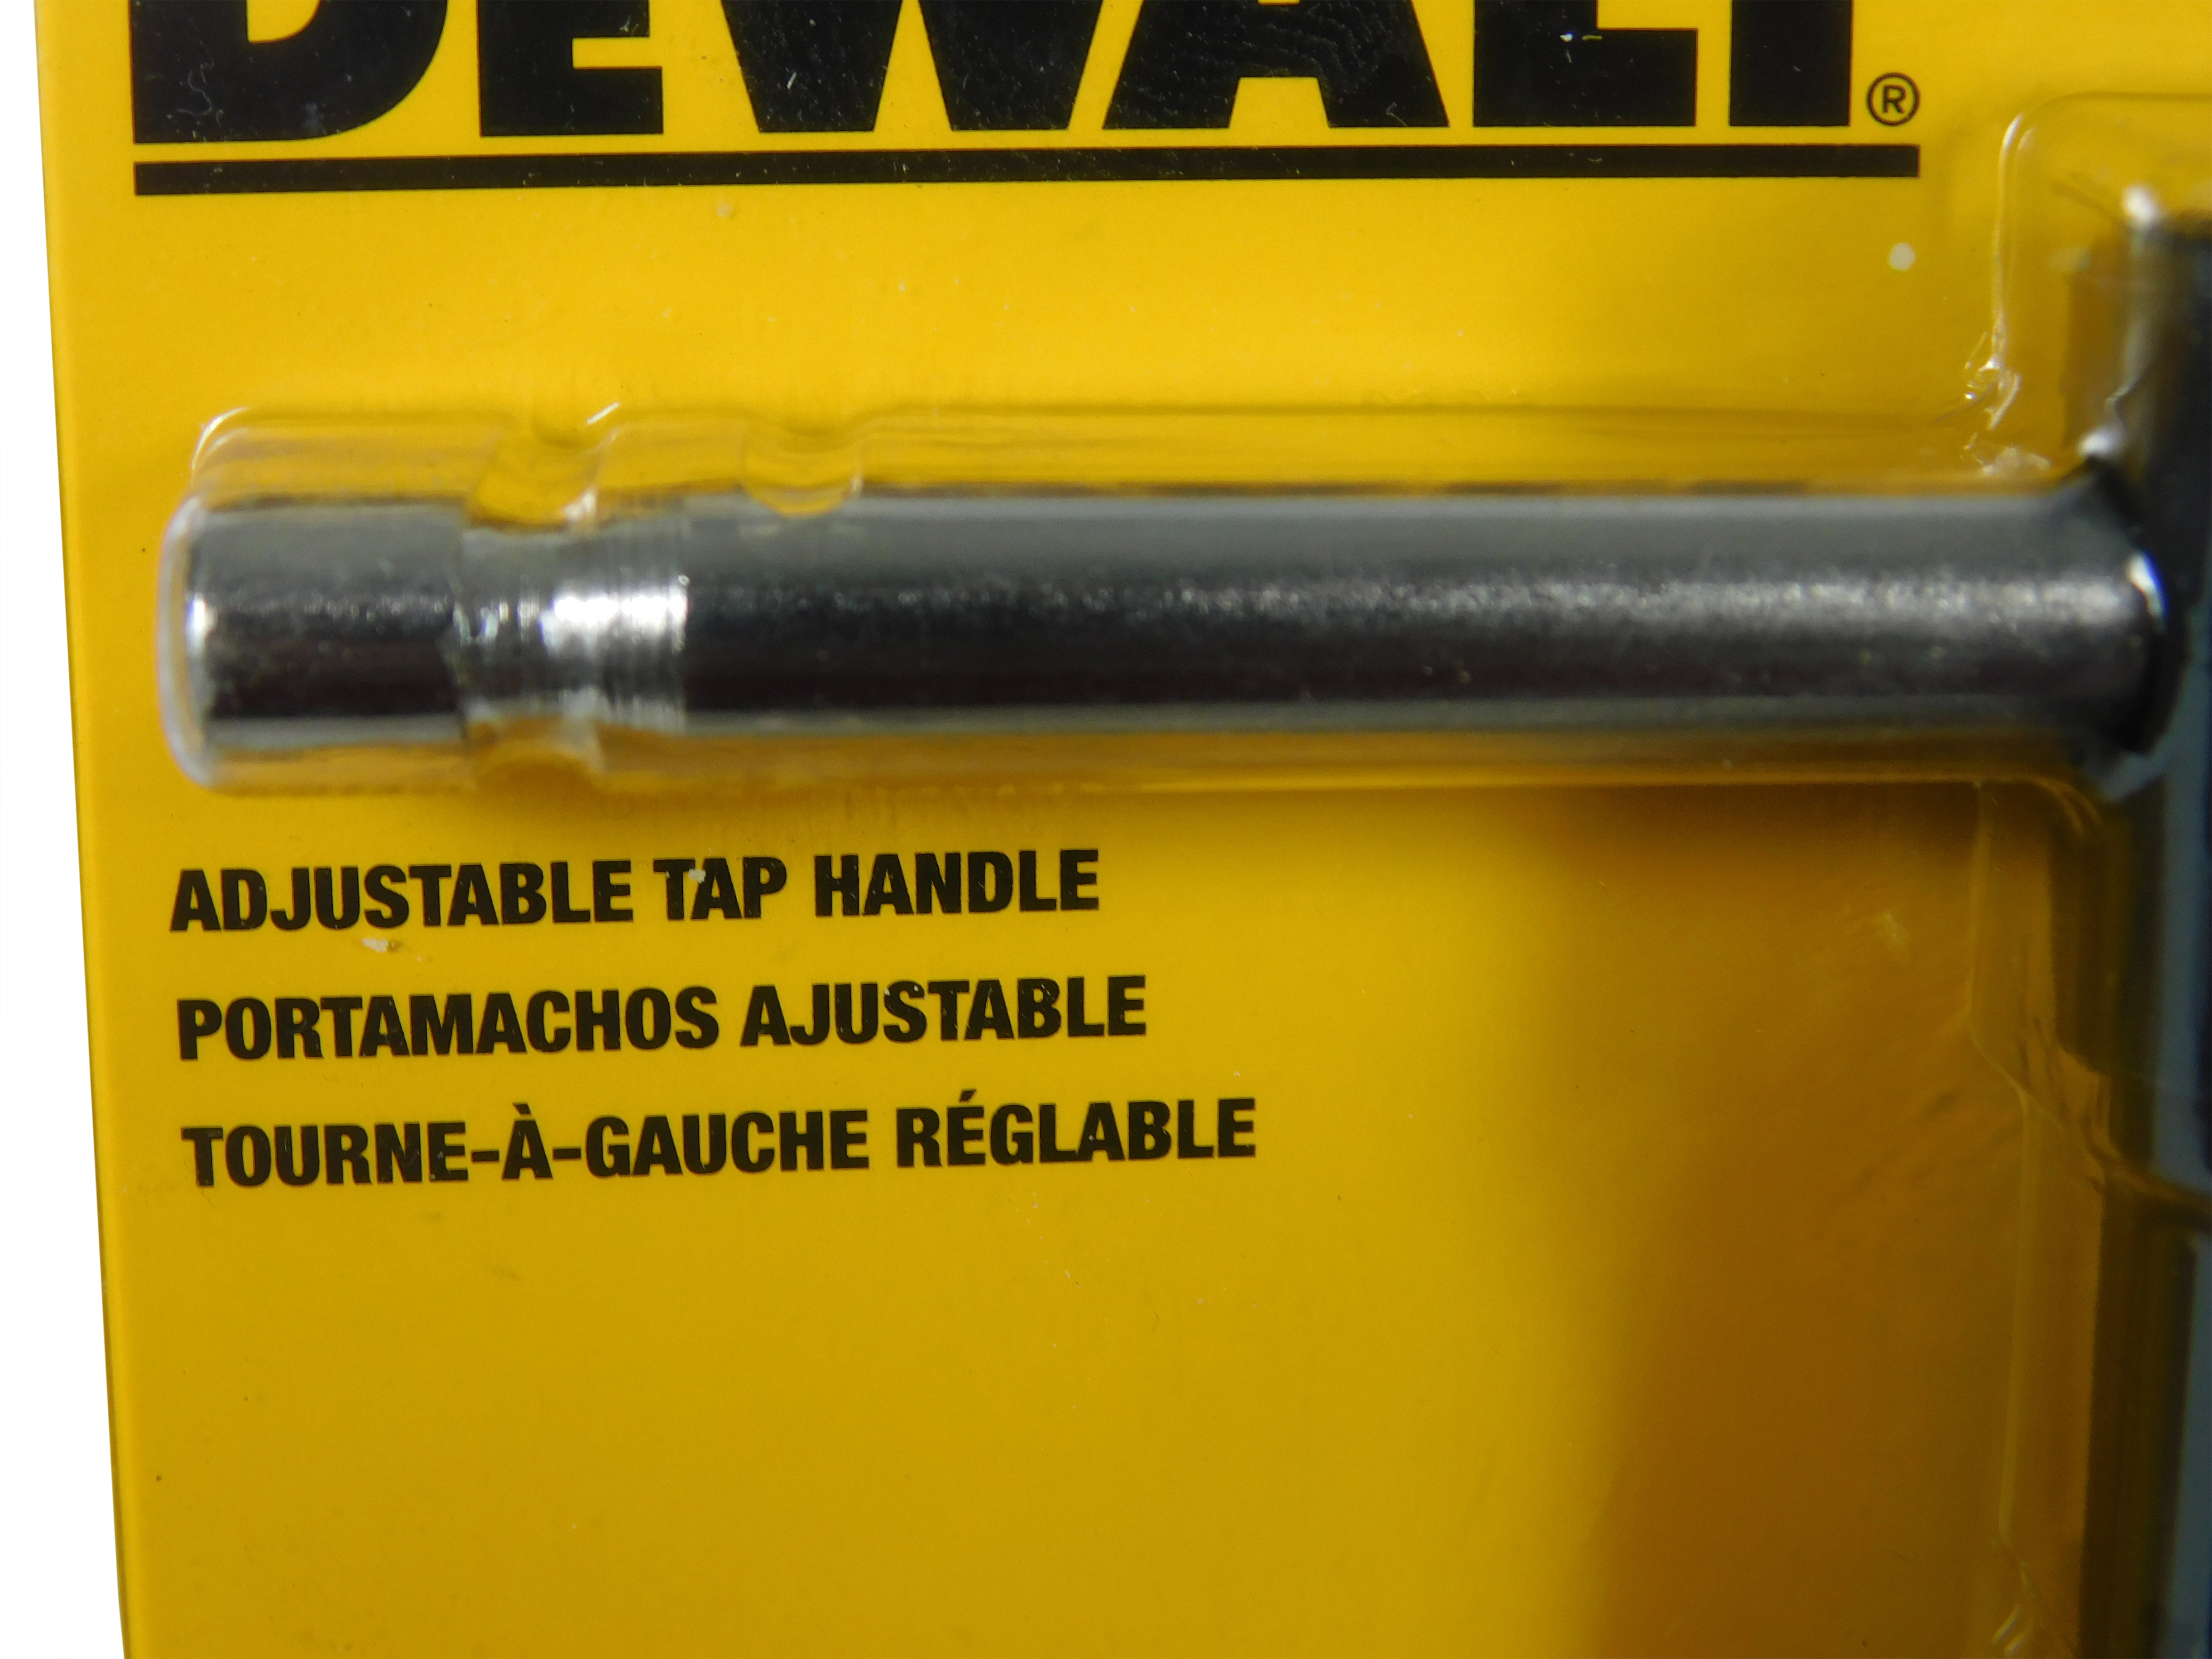 Dewalt-DWA141TH-1-4-in.-x-1-2-in.-Adjustable-Tap-Handle-image-2